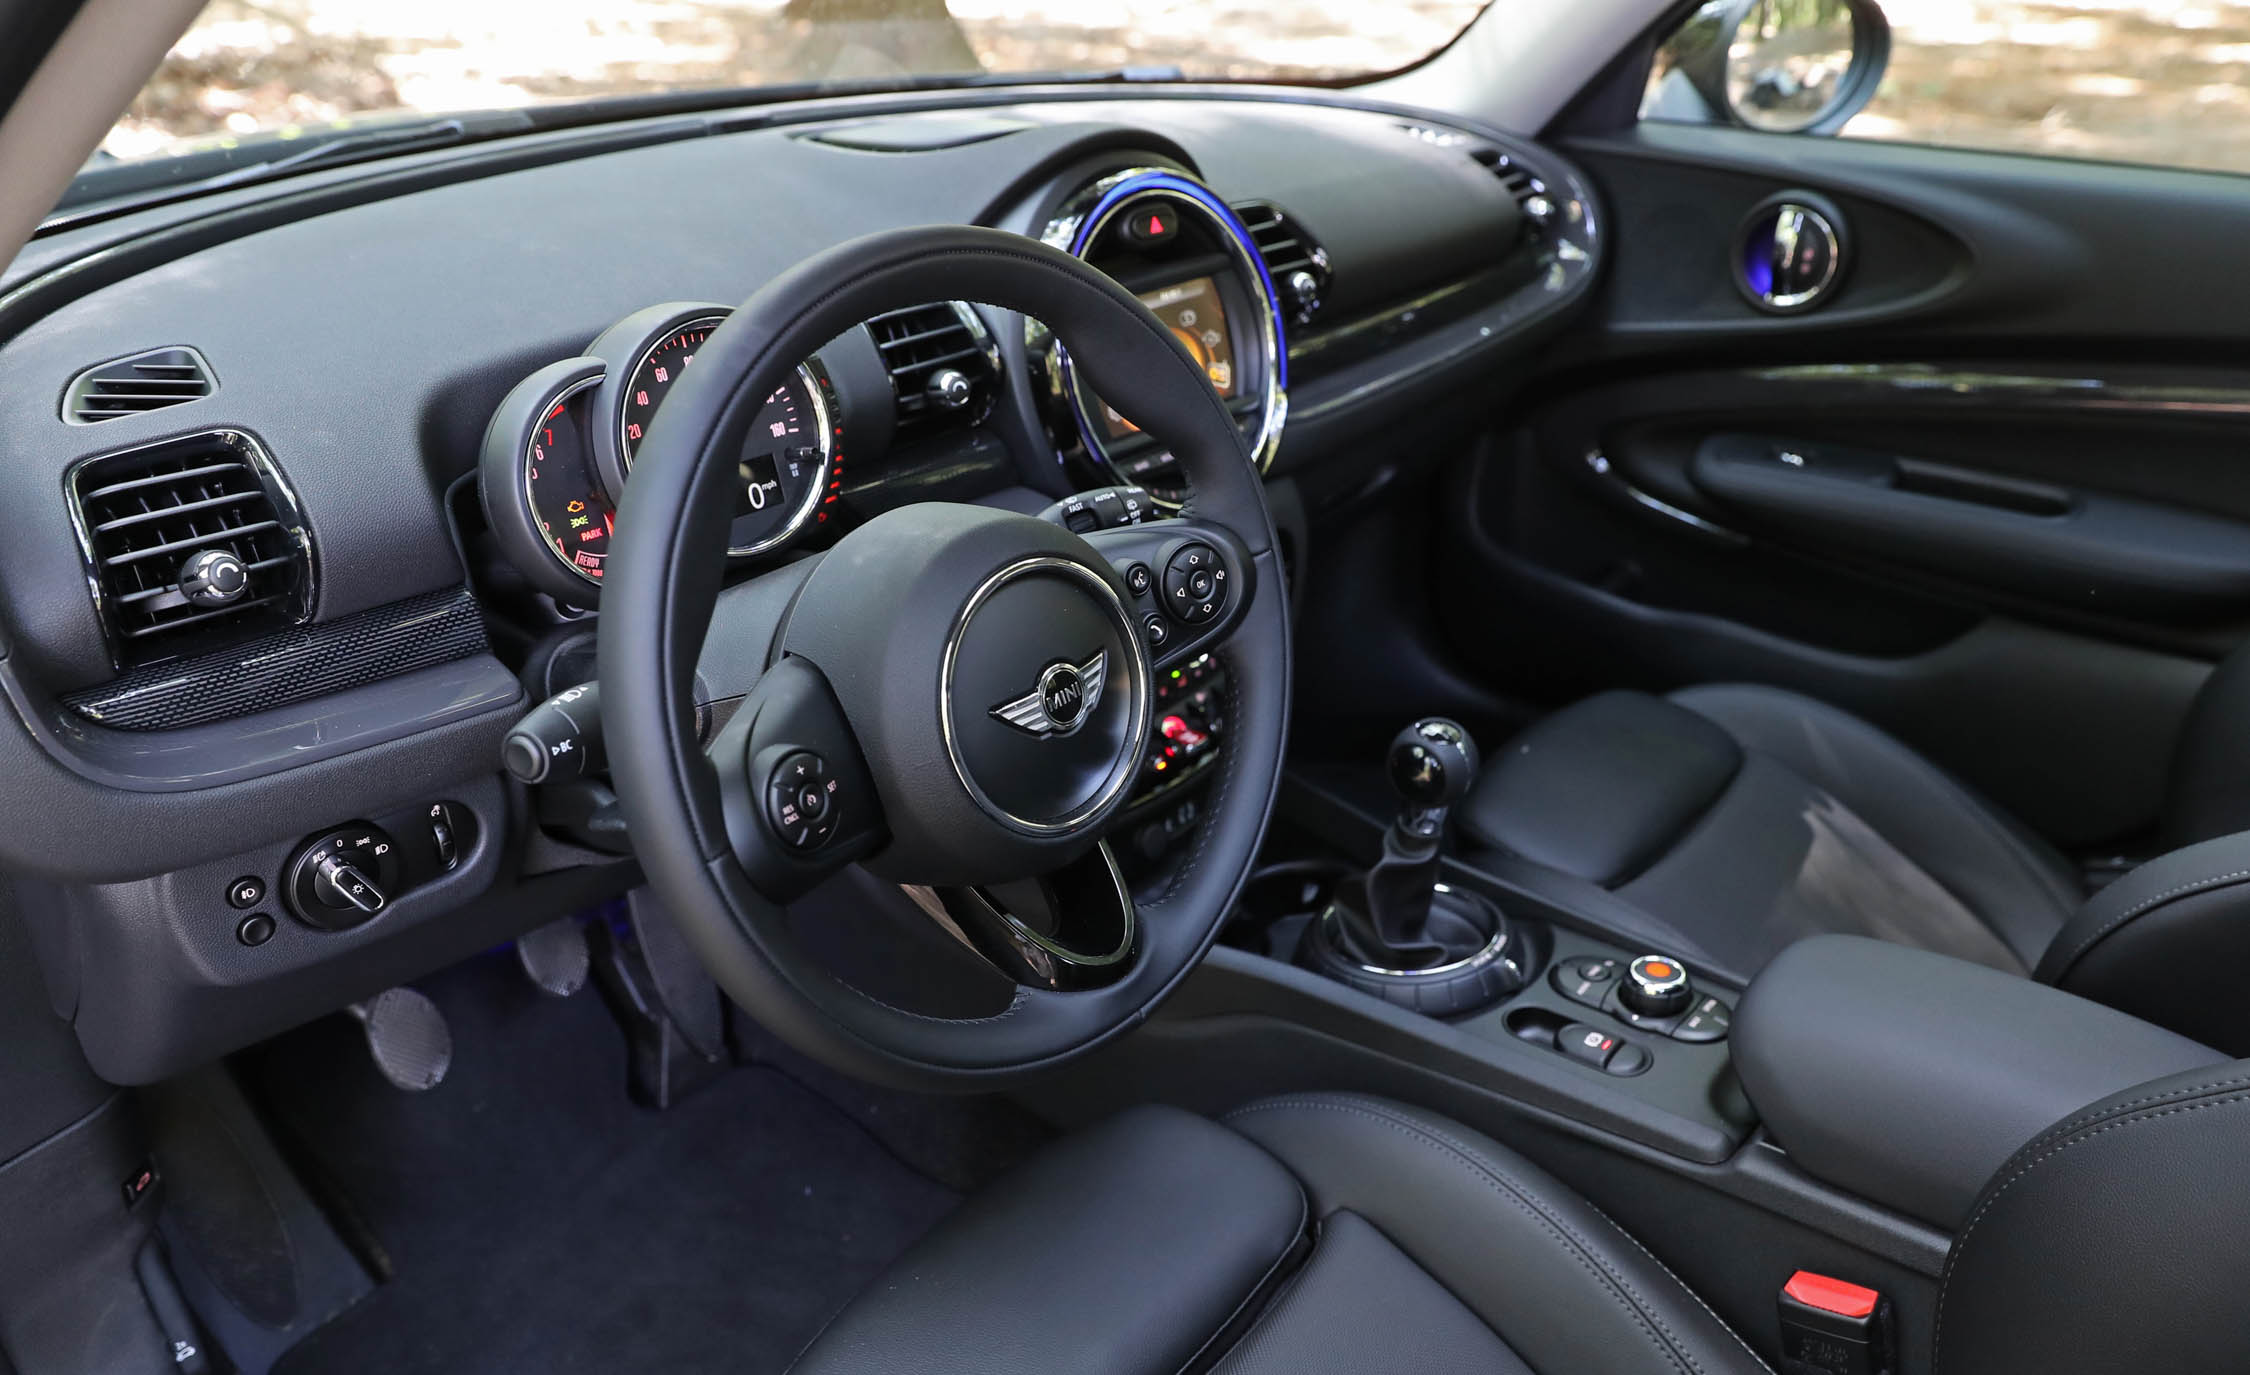 2017 Mini Cooper S ALL4 Clubman Interior Seats Front (Photo 19 of 29)